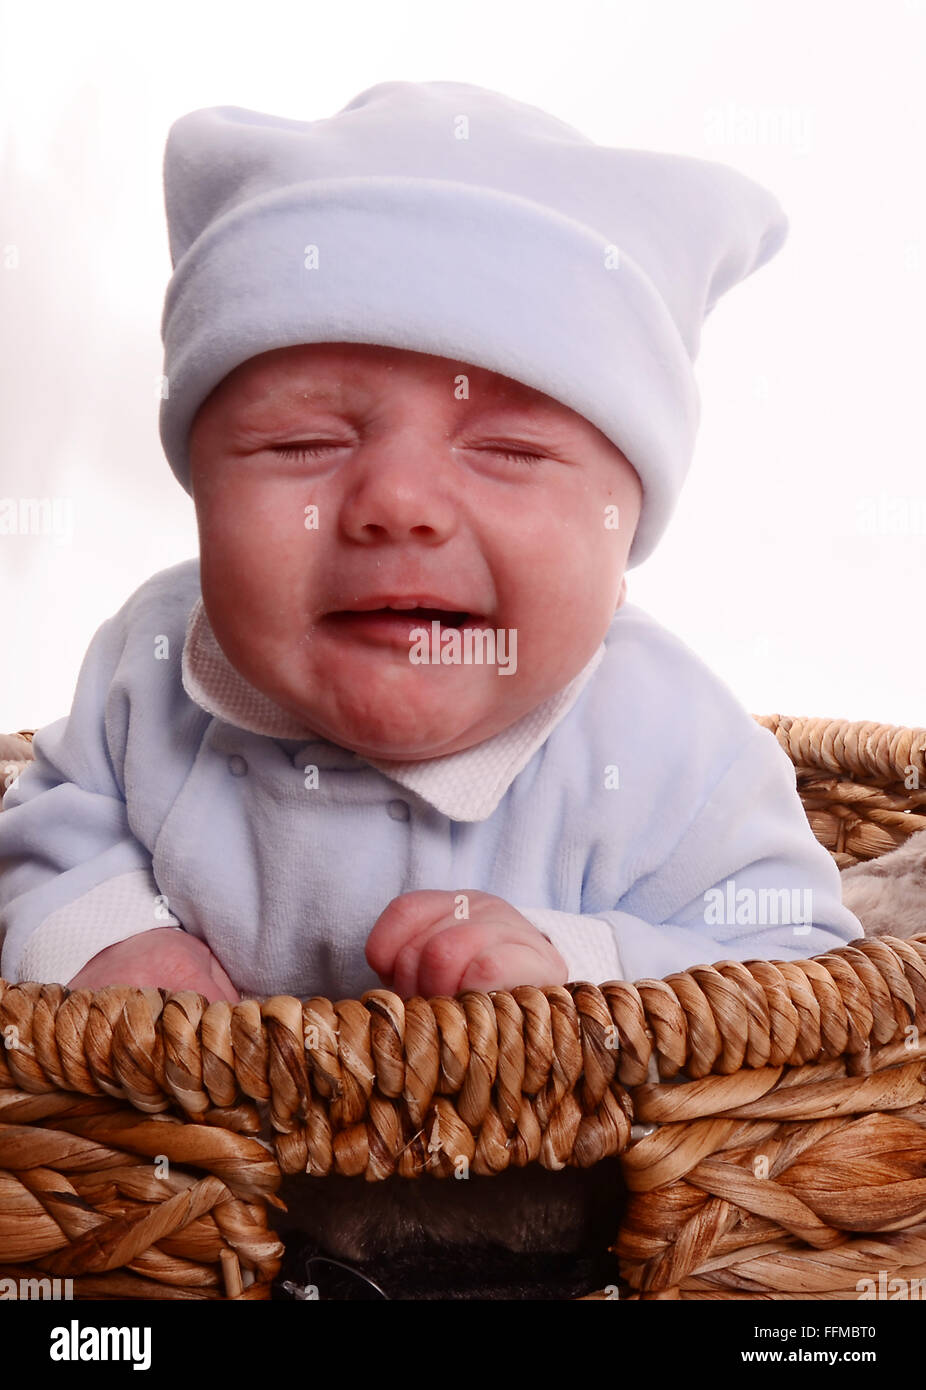 unhappy baby boy crying, stress, upset, cry for attention, postnatal depression - Stock Image